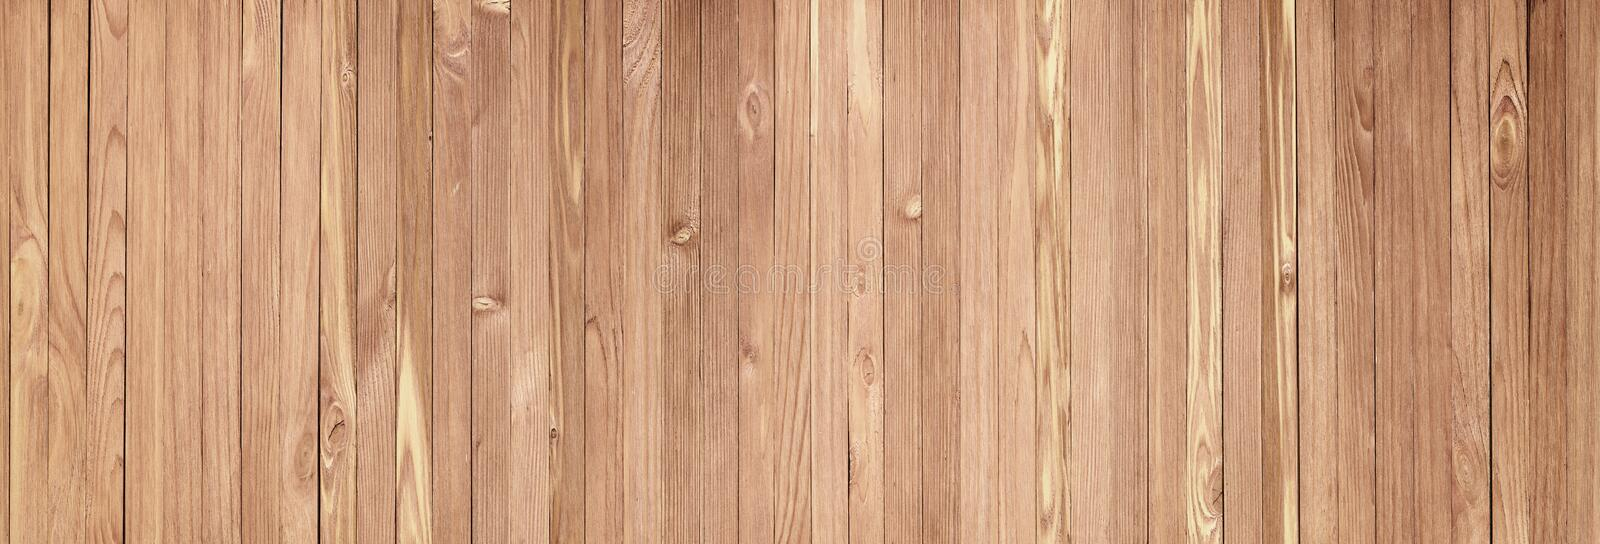 Rustic Wooden Table Background Top View. Light Wood